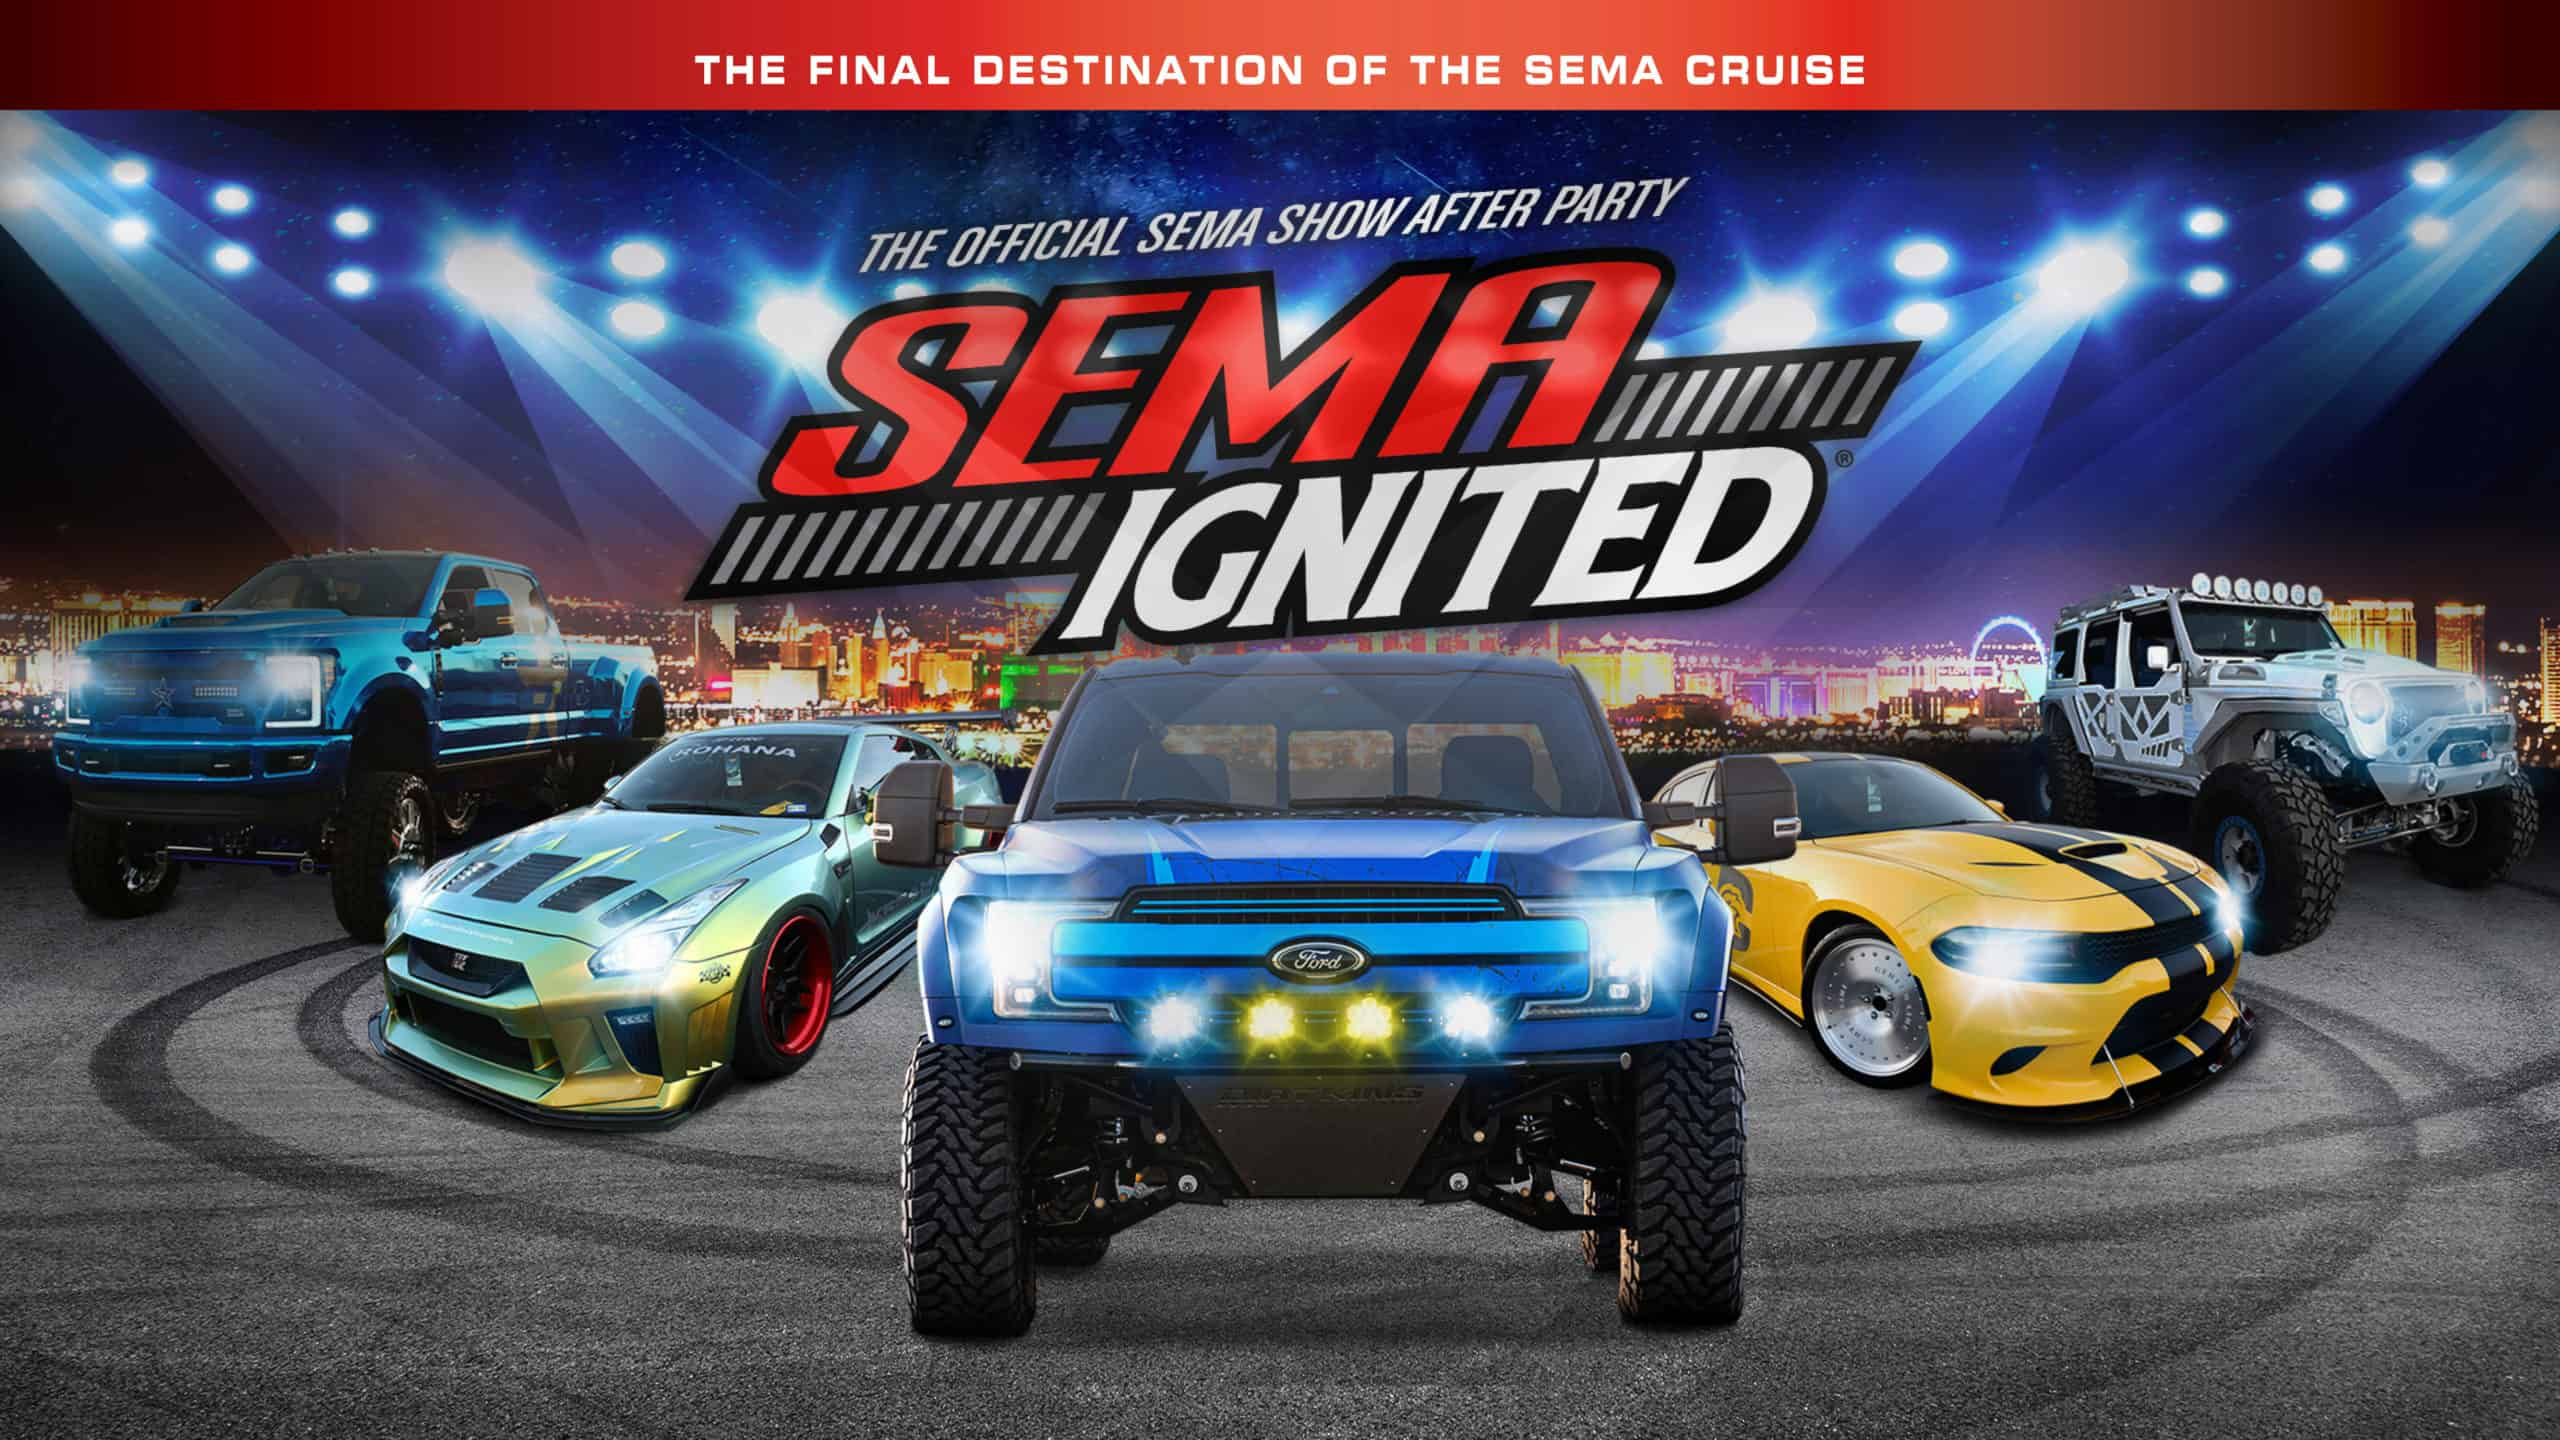 Halloween At Sema 2020 Parties SEMA Ignited 2020 ~ The SEMA Show After Party